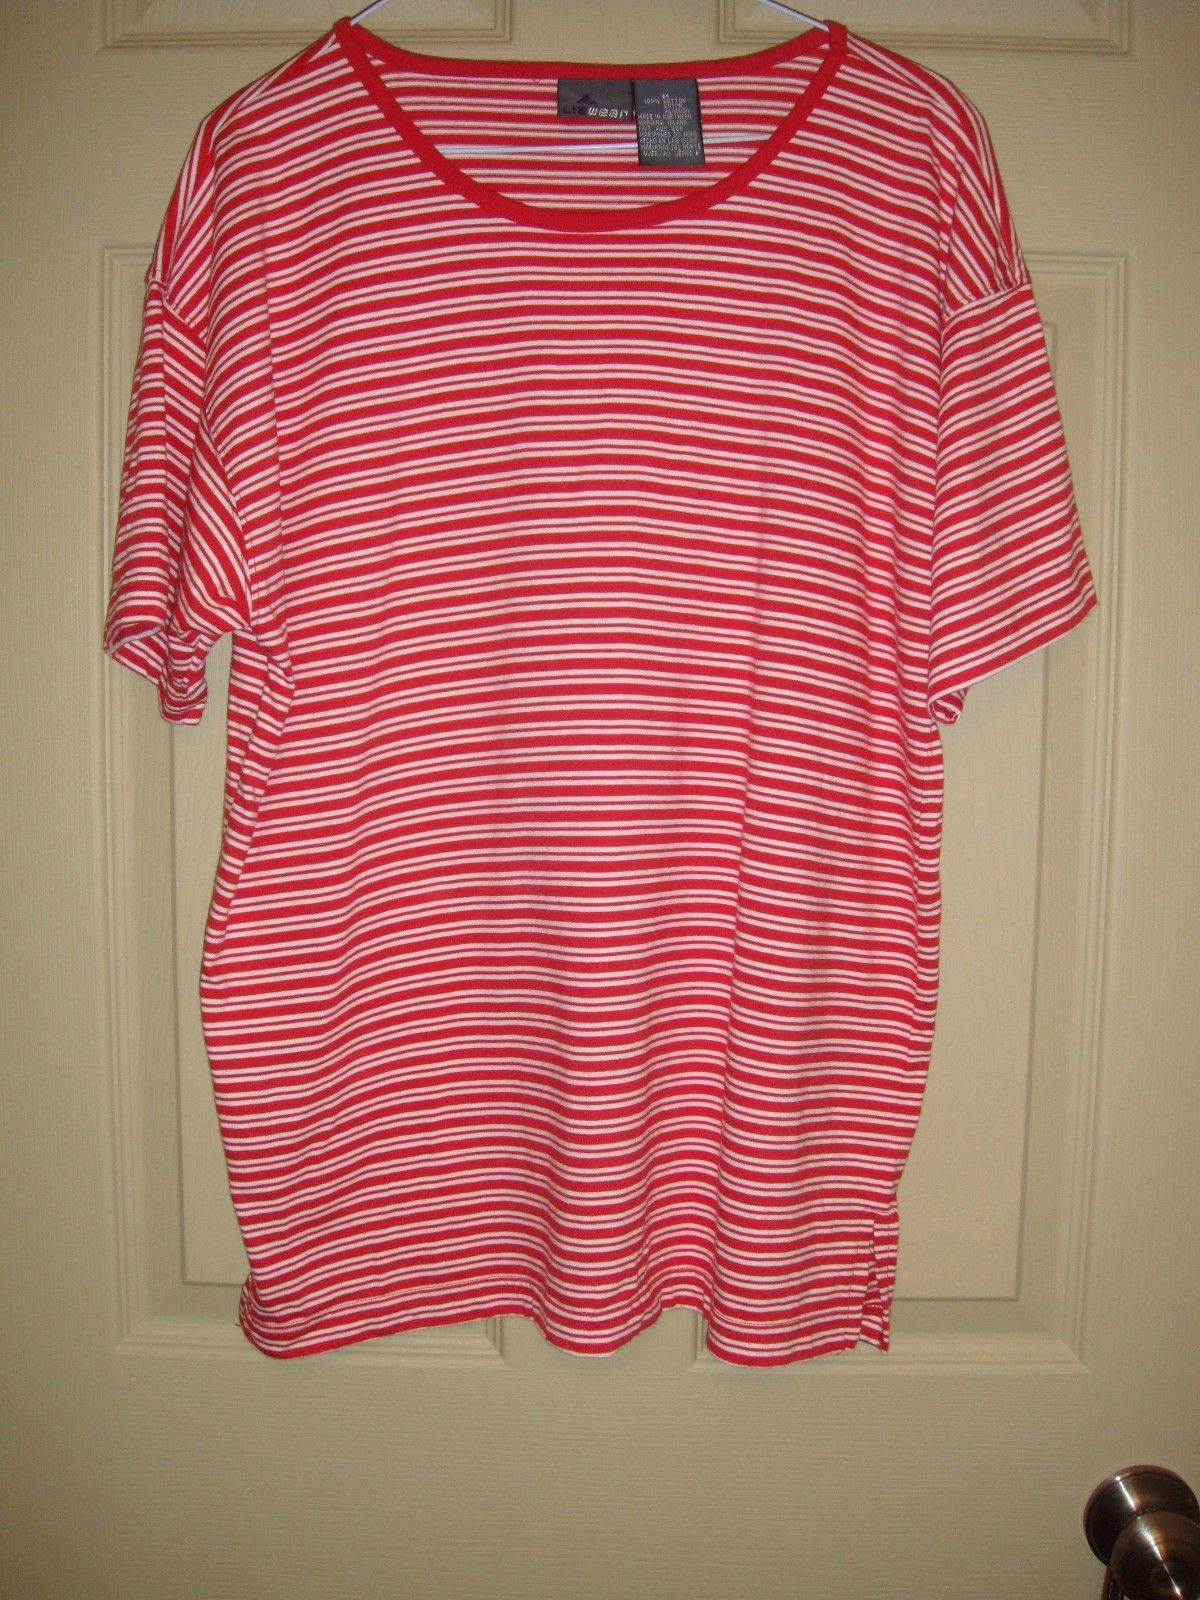 Liz Claiborne Red With White Double Stripe Short Sleeve Top Size M